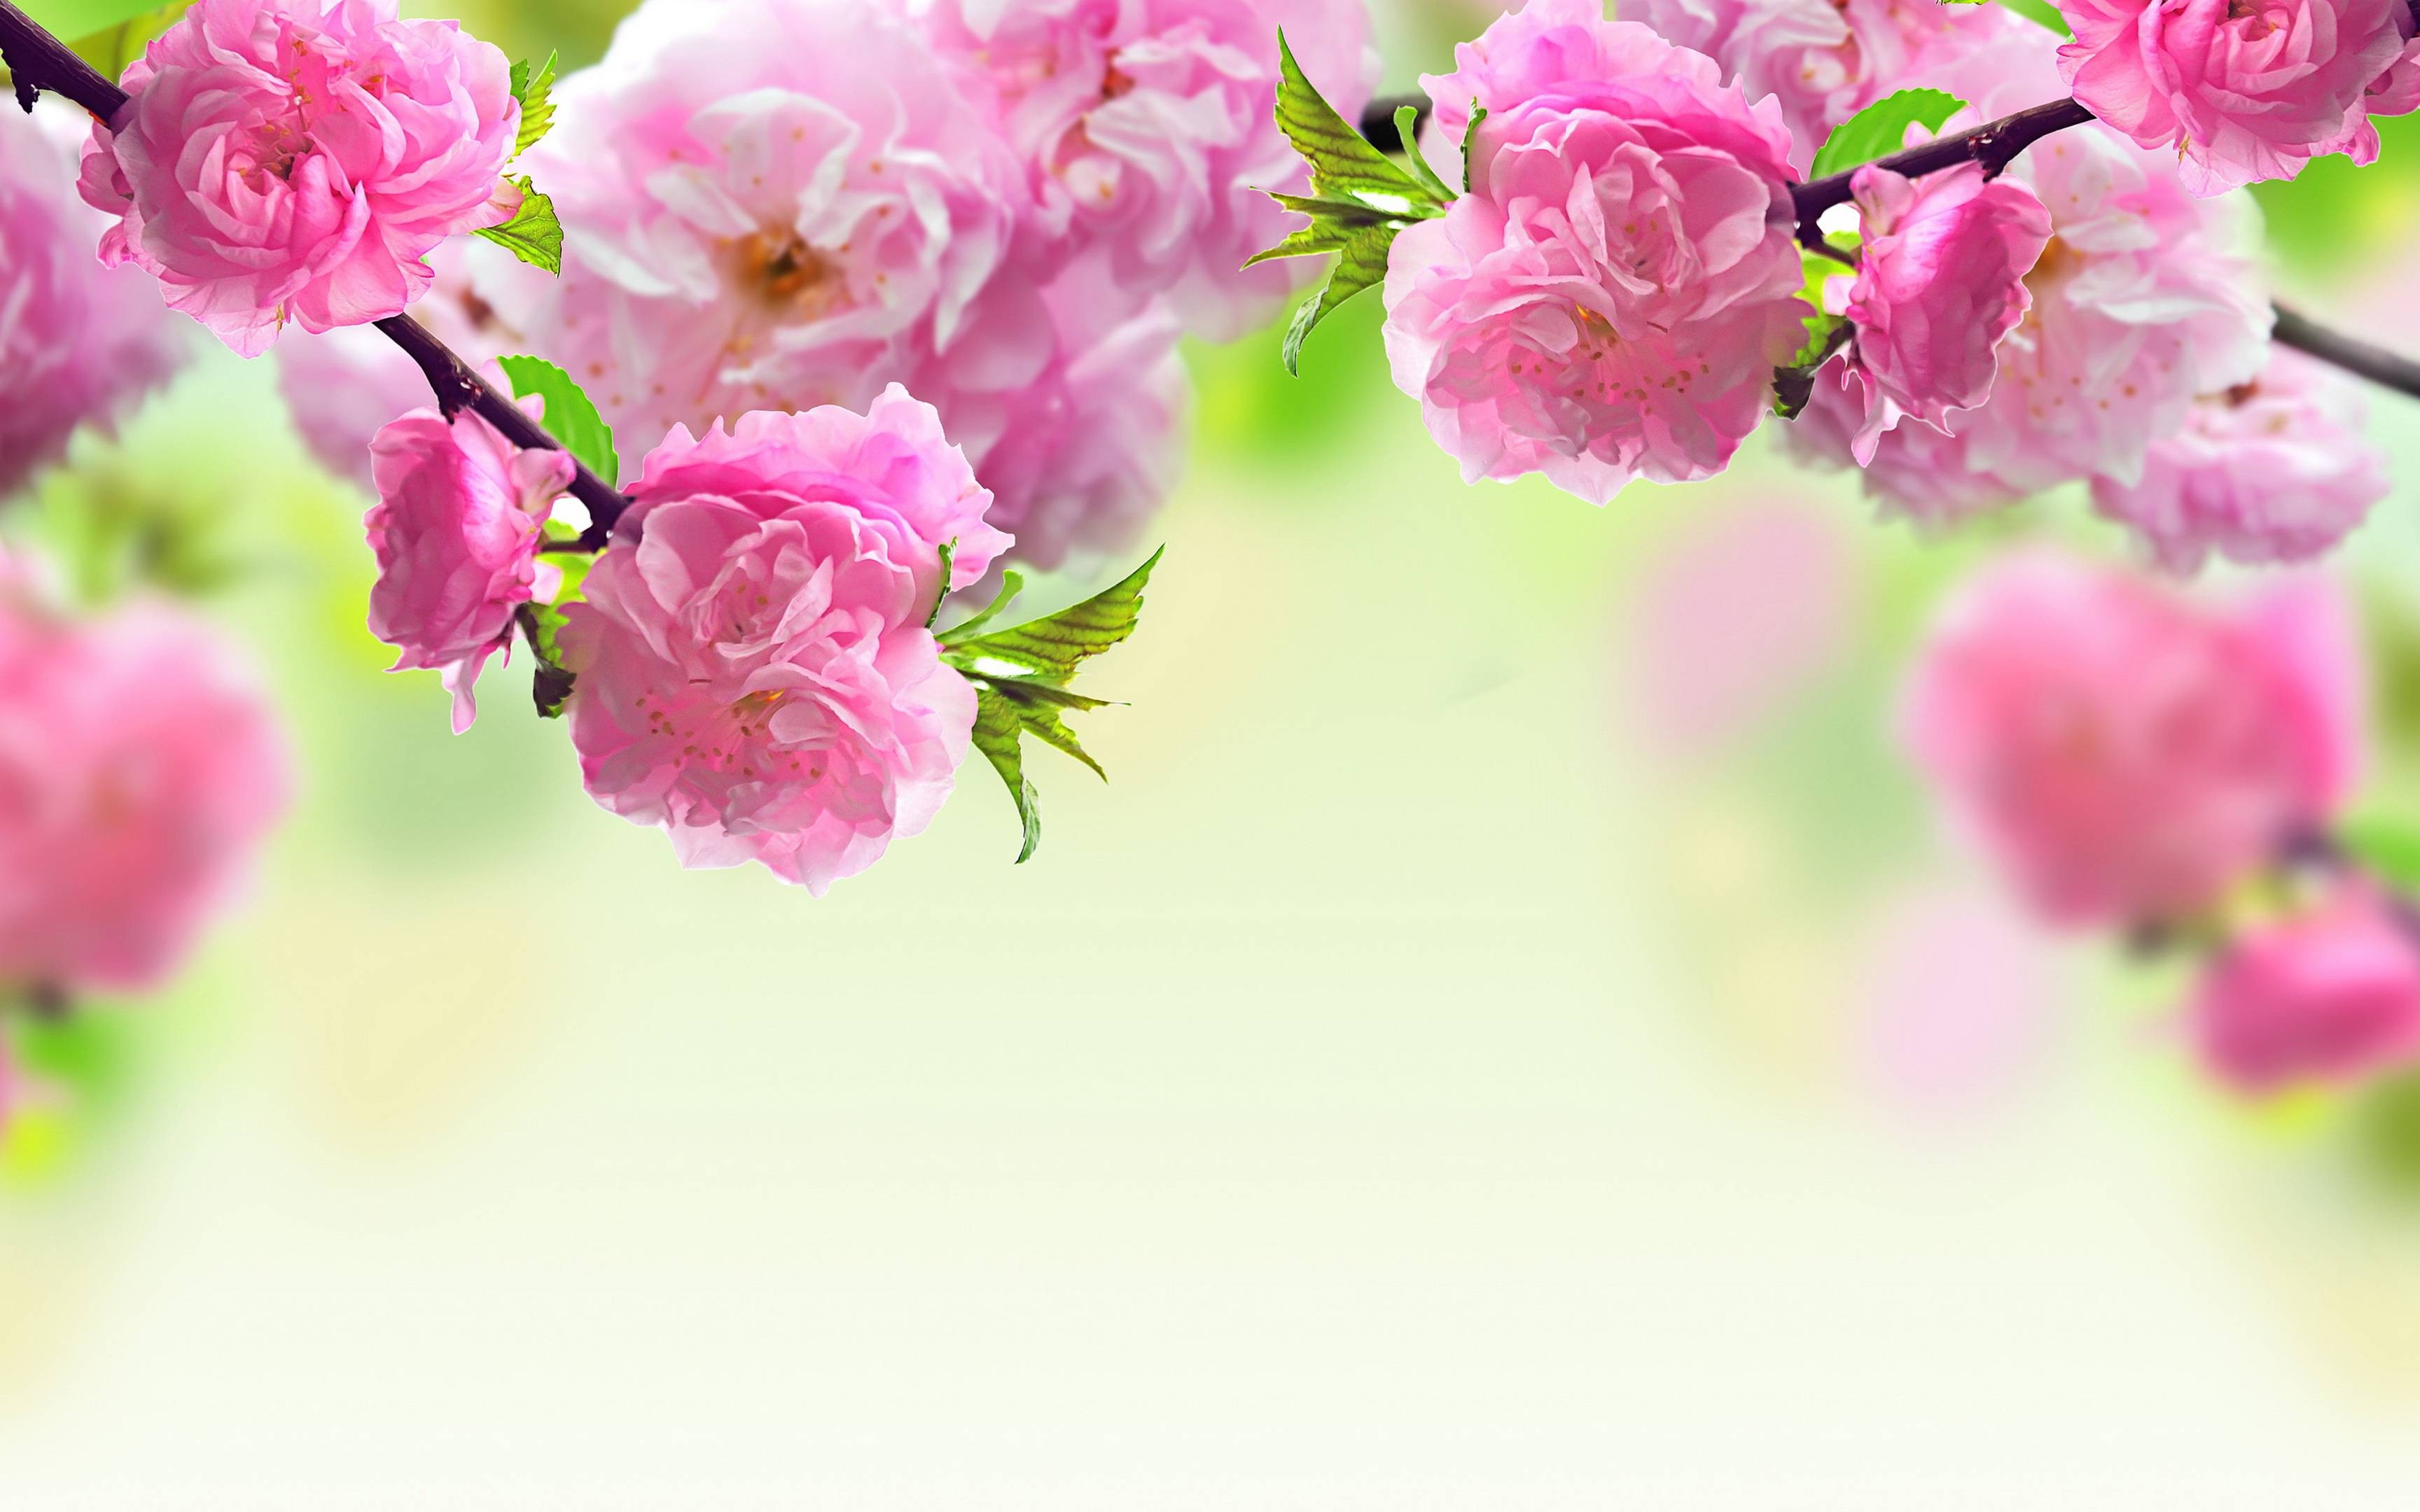 Pretty Flowers Backgrounds Tumblr Wallpapers